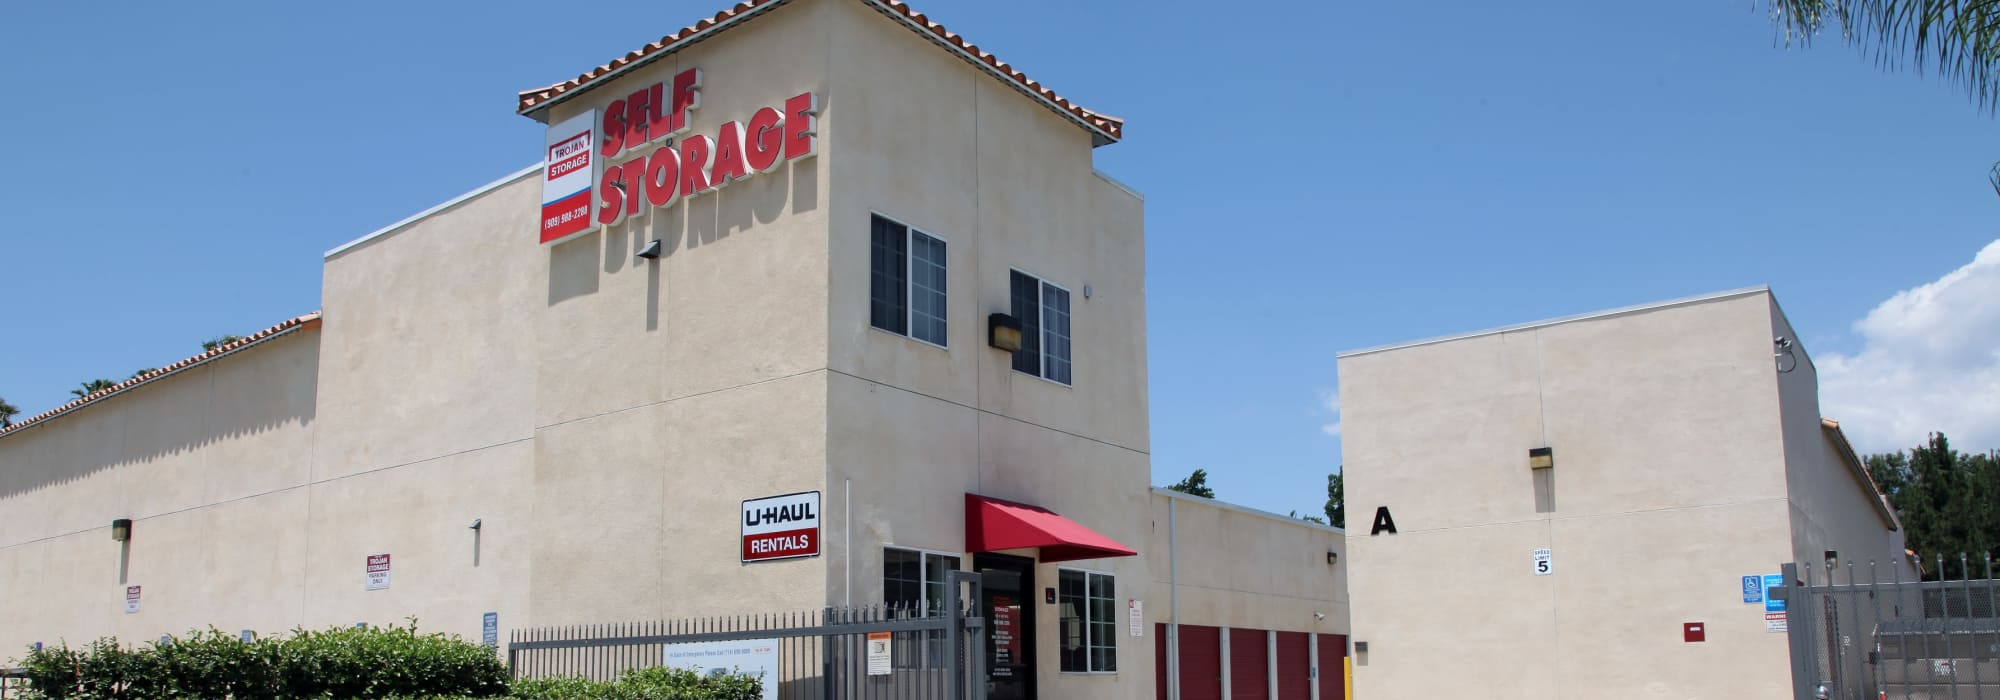 Self storage at Trojan Storage in Ontario California